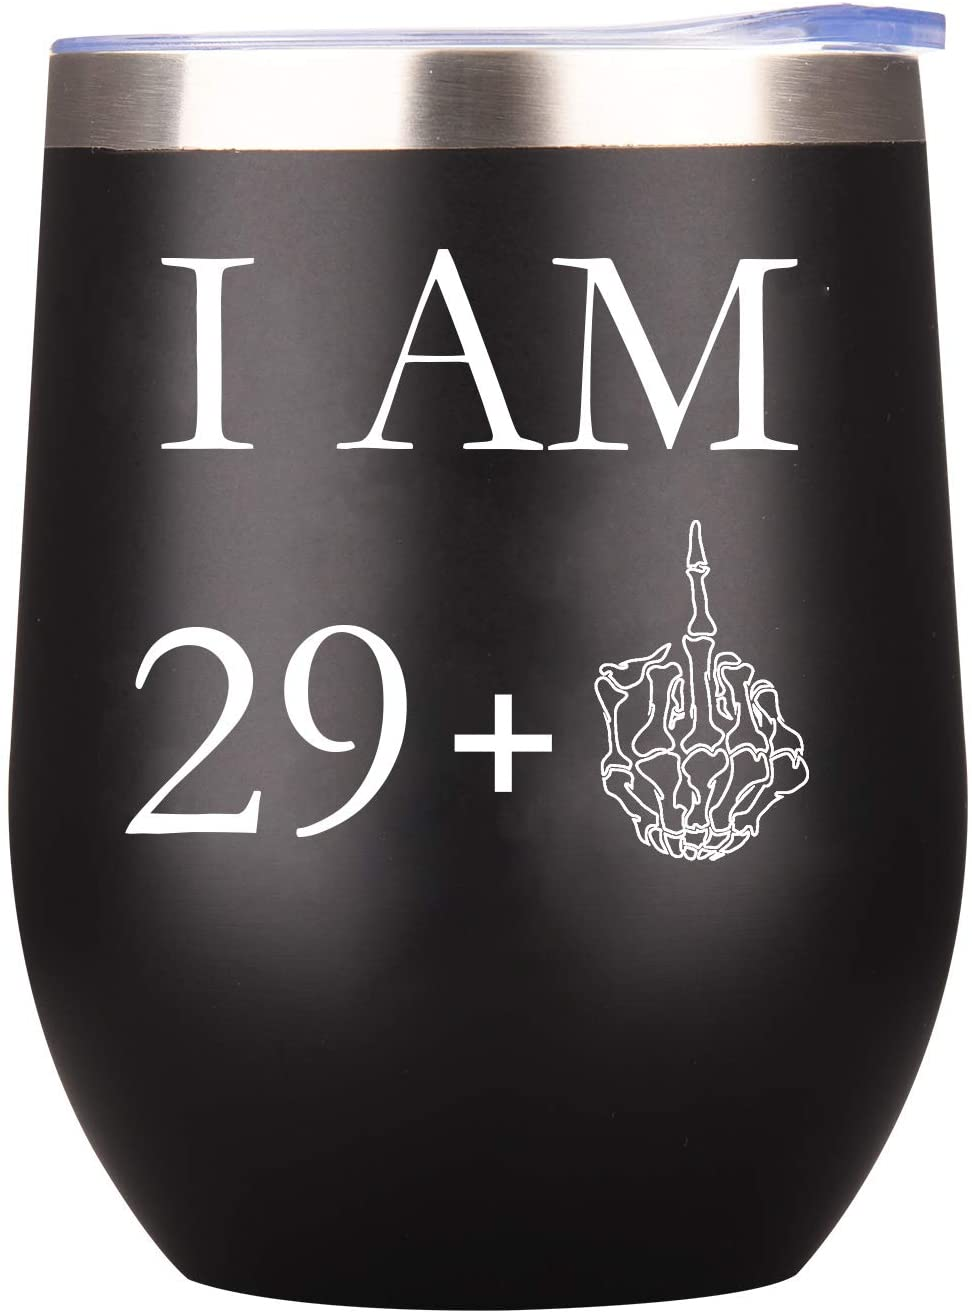 29+ One Middle Finger Wine Tumbler Funny Stemless Steel with Lid Unique 30th Birthday Gifts for Man Women Friend Lover Turning Perfect Party Decoration 12 Oz (Black-30, 12 Ounce)